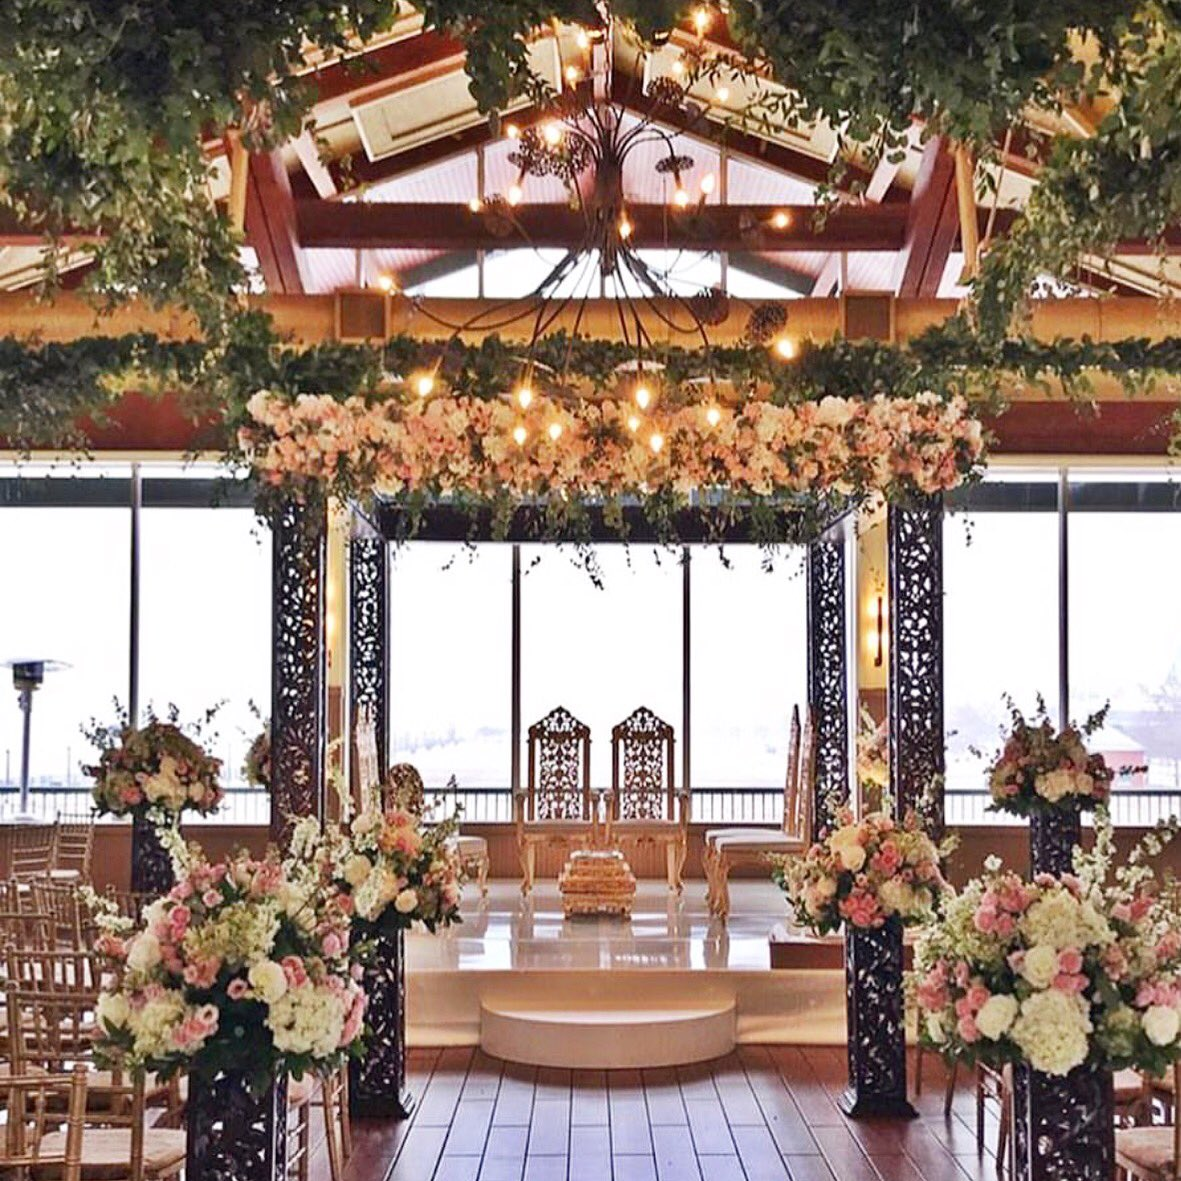 Hoboken On Twitter New Jersey Wedding Venues With A View Of York City Https T Co W4ggry9bsy